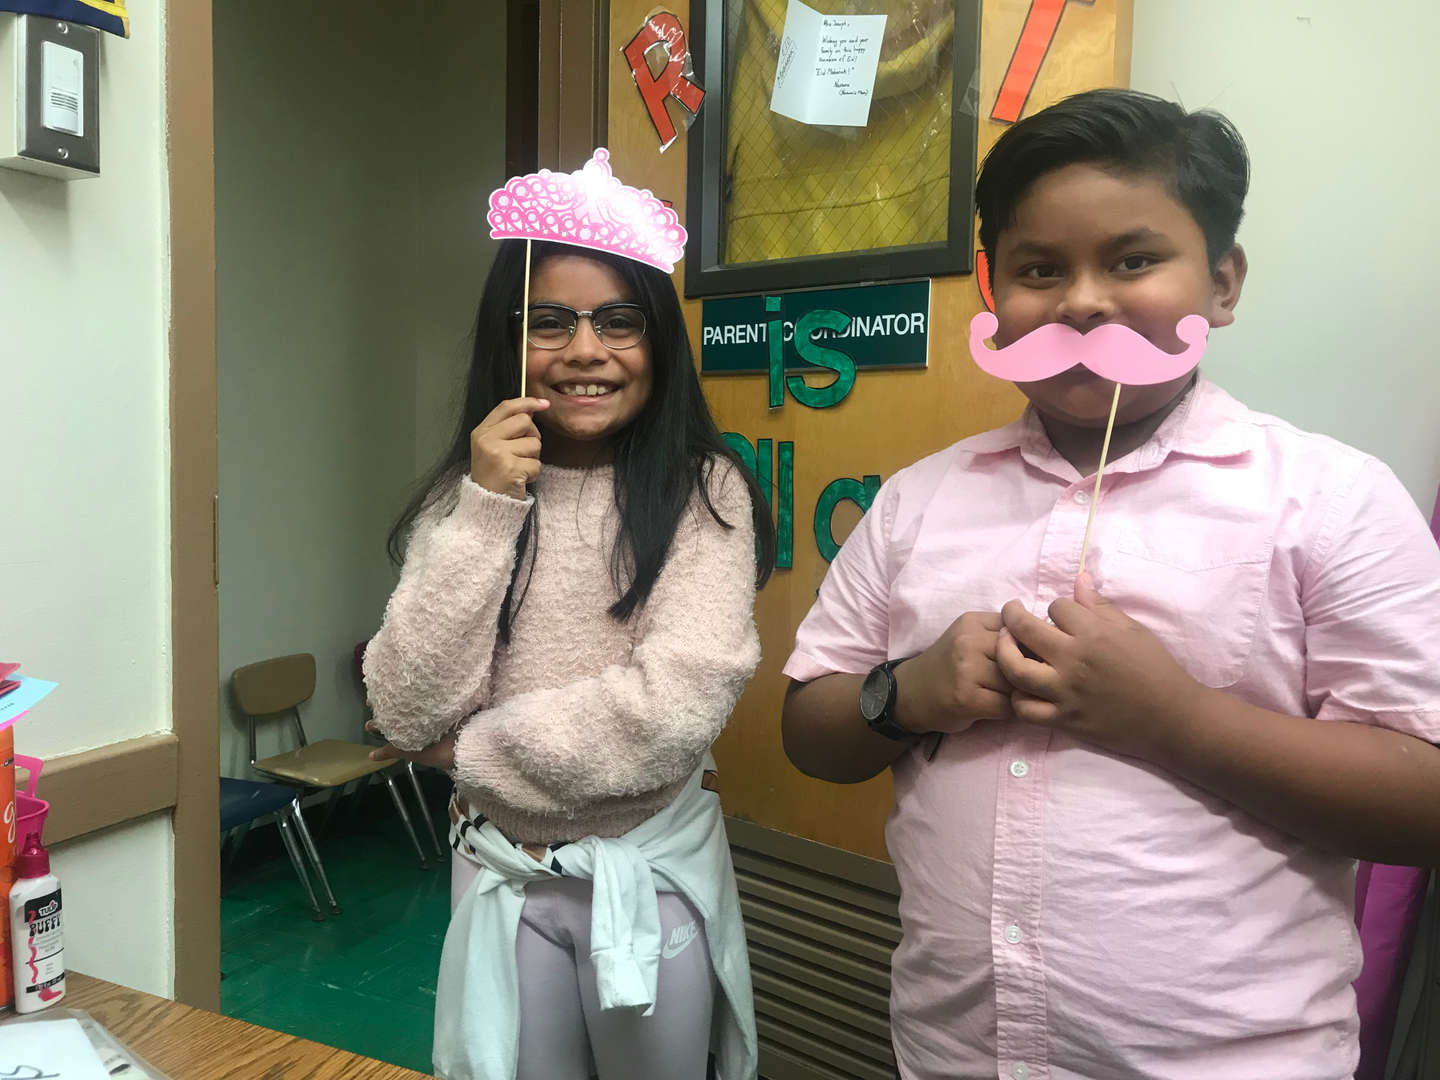 Two students dressed in pink with paper photo props